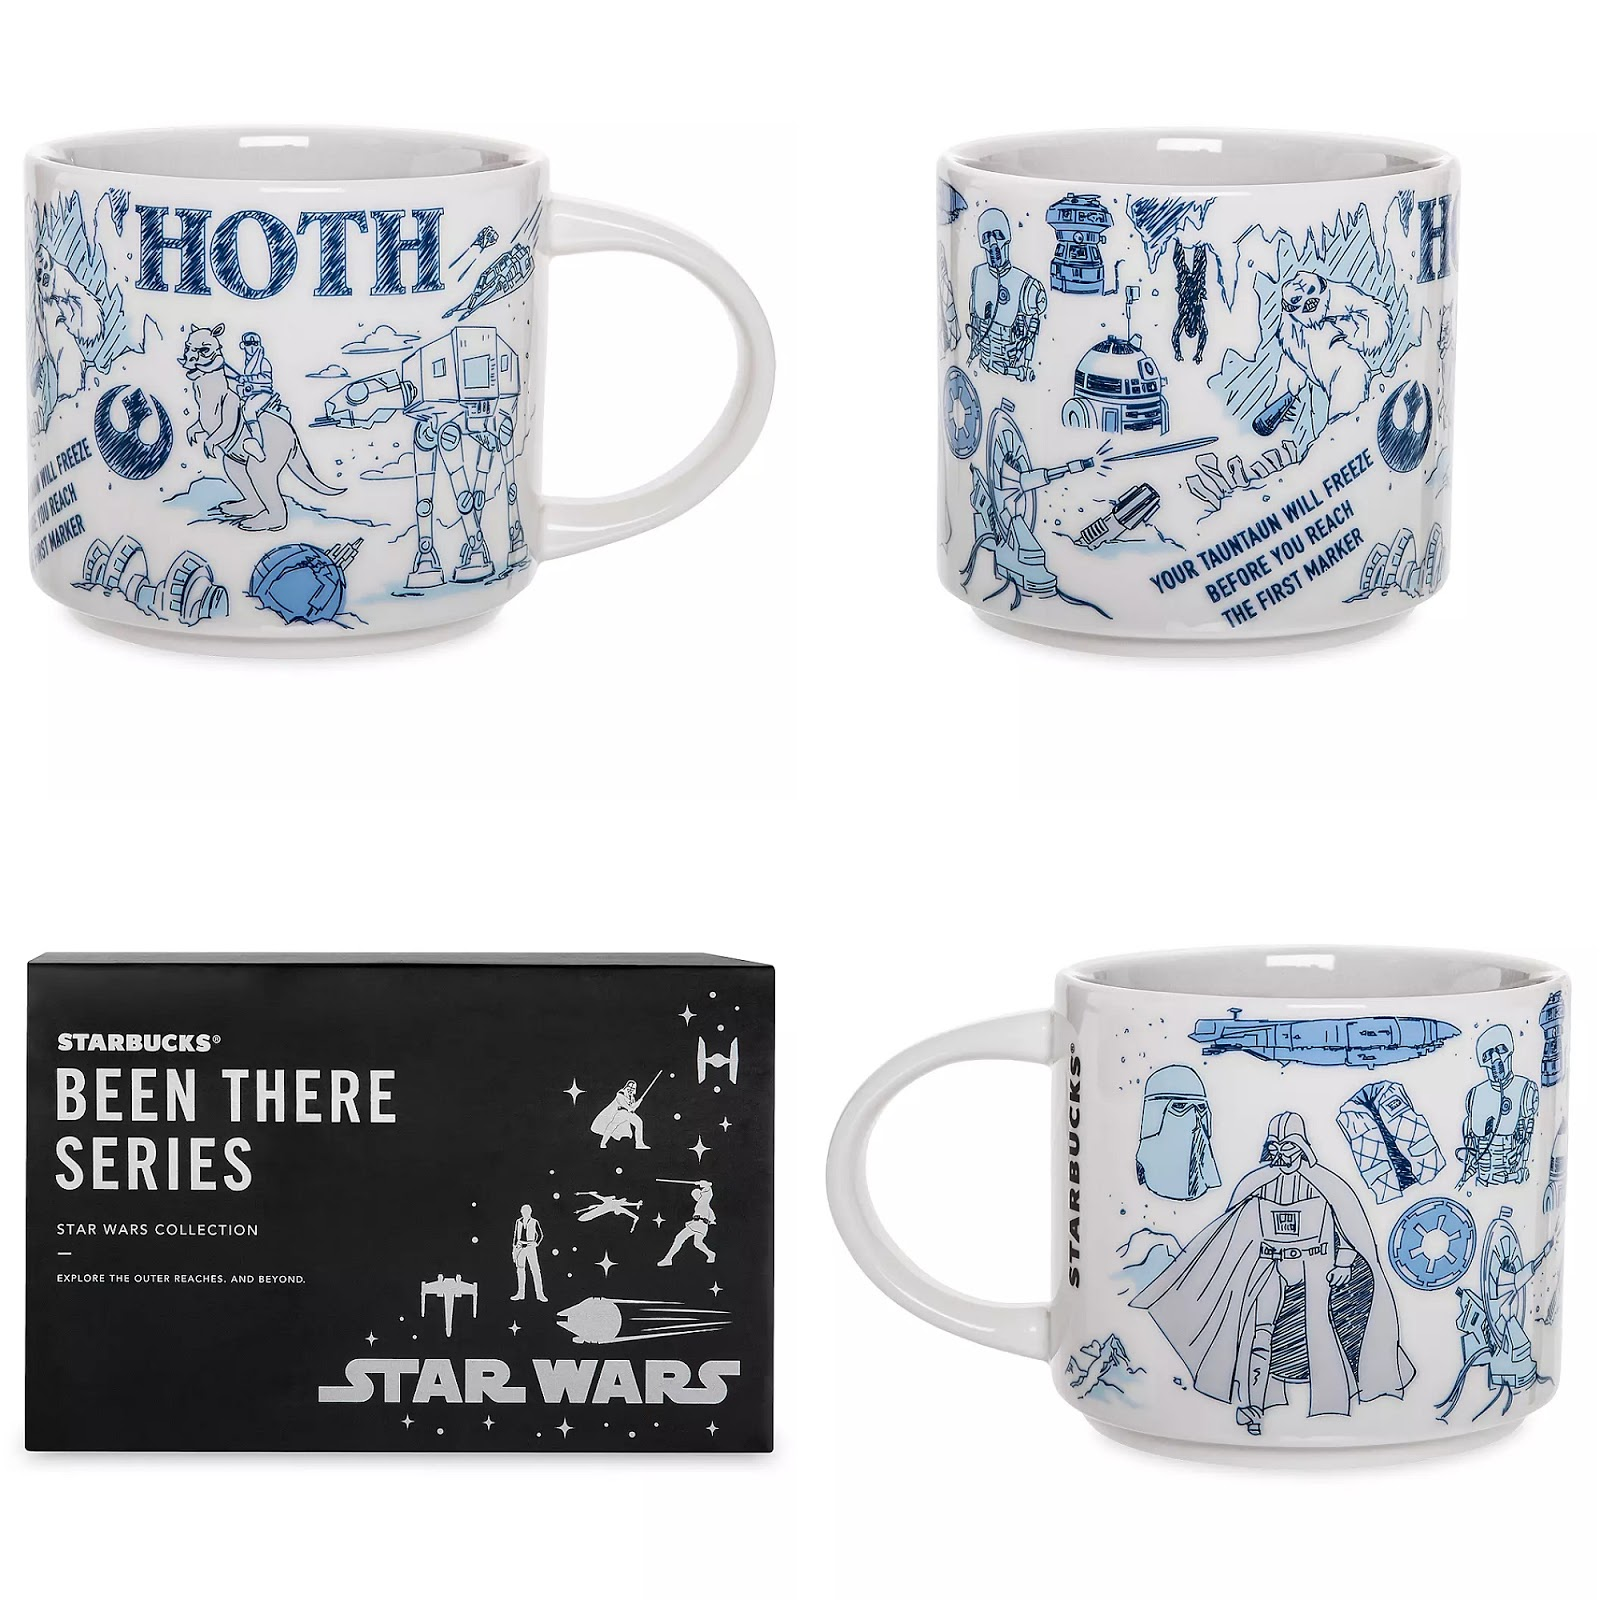 Droids Official Drinking Mug Star Wars Disney Microwave Safe. New And Boxed